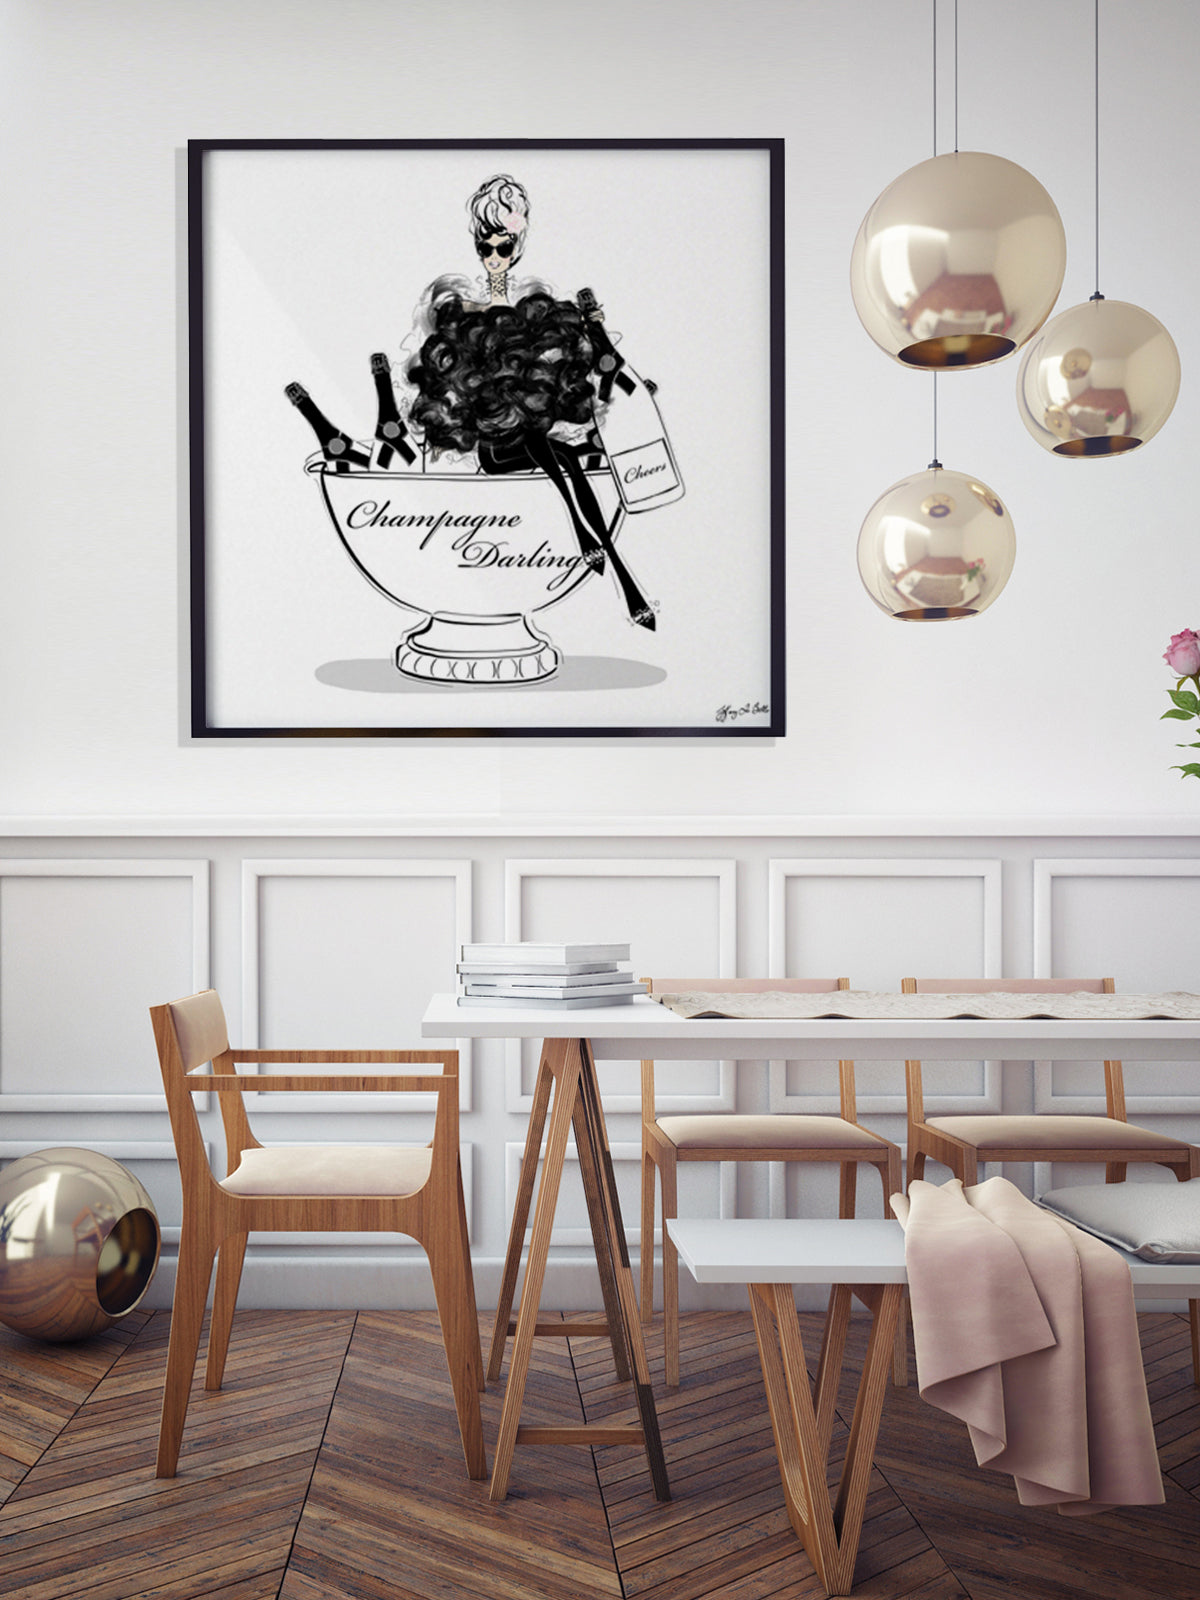 Champagne Darling - Illustration - Limited Edition Print - Tiffany La Belle